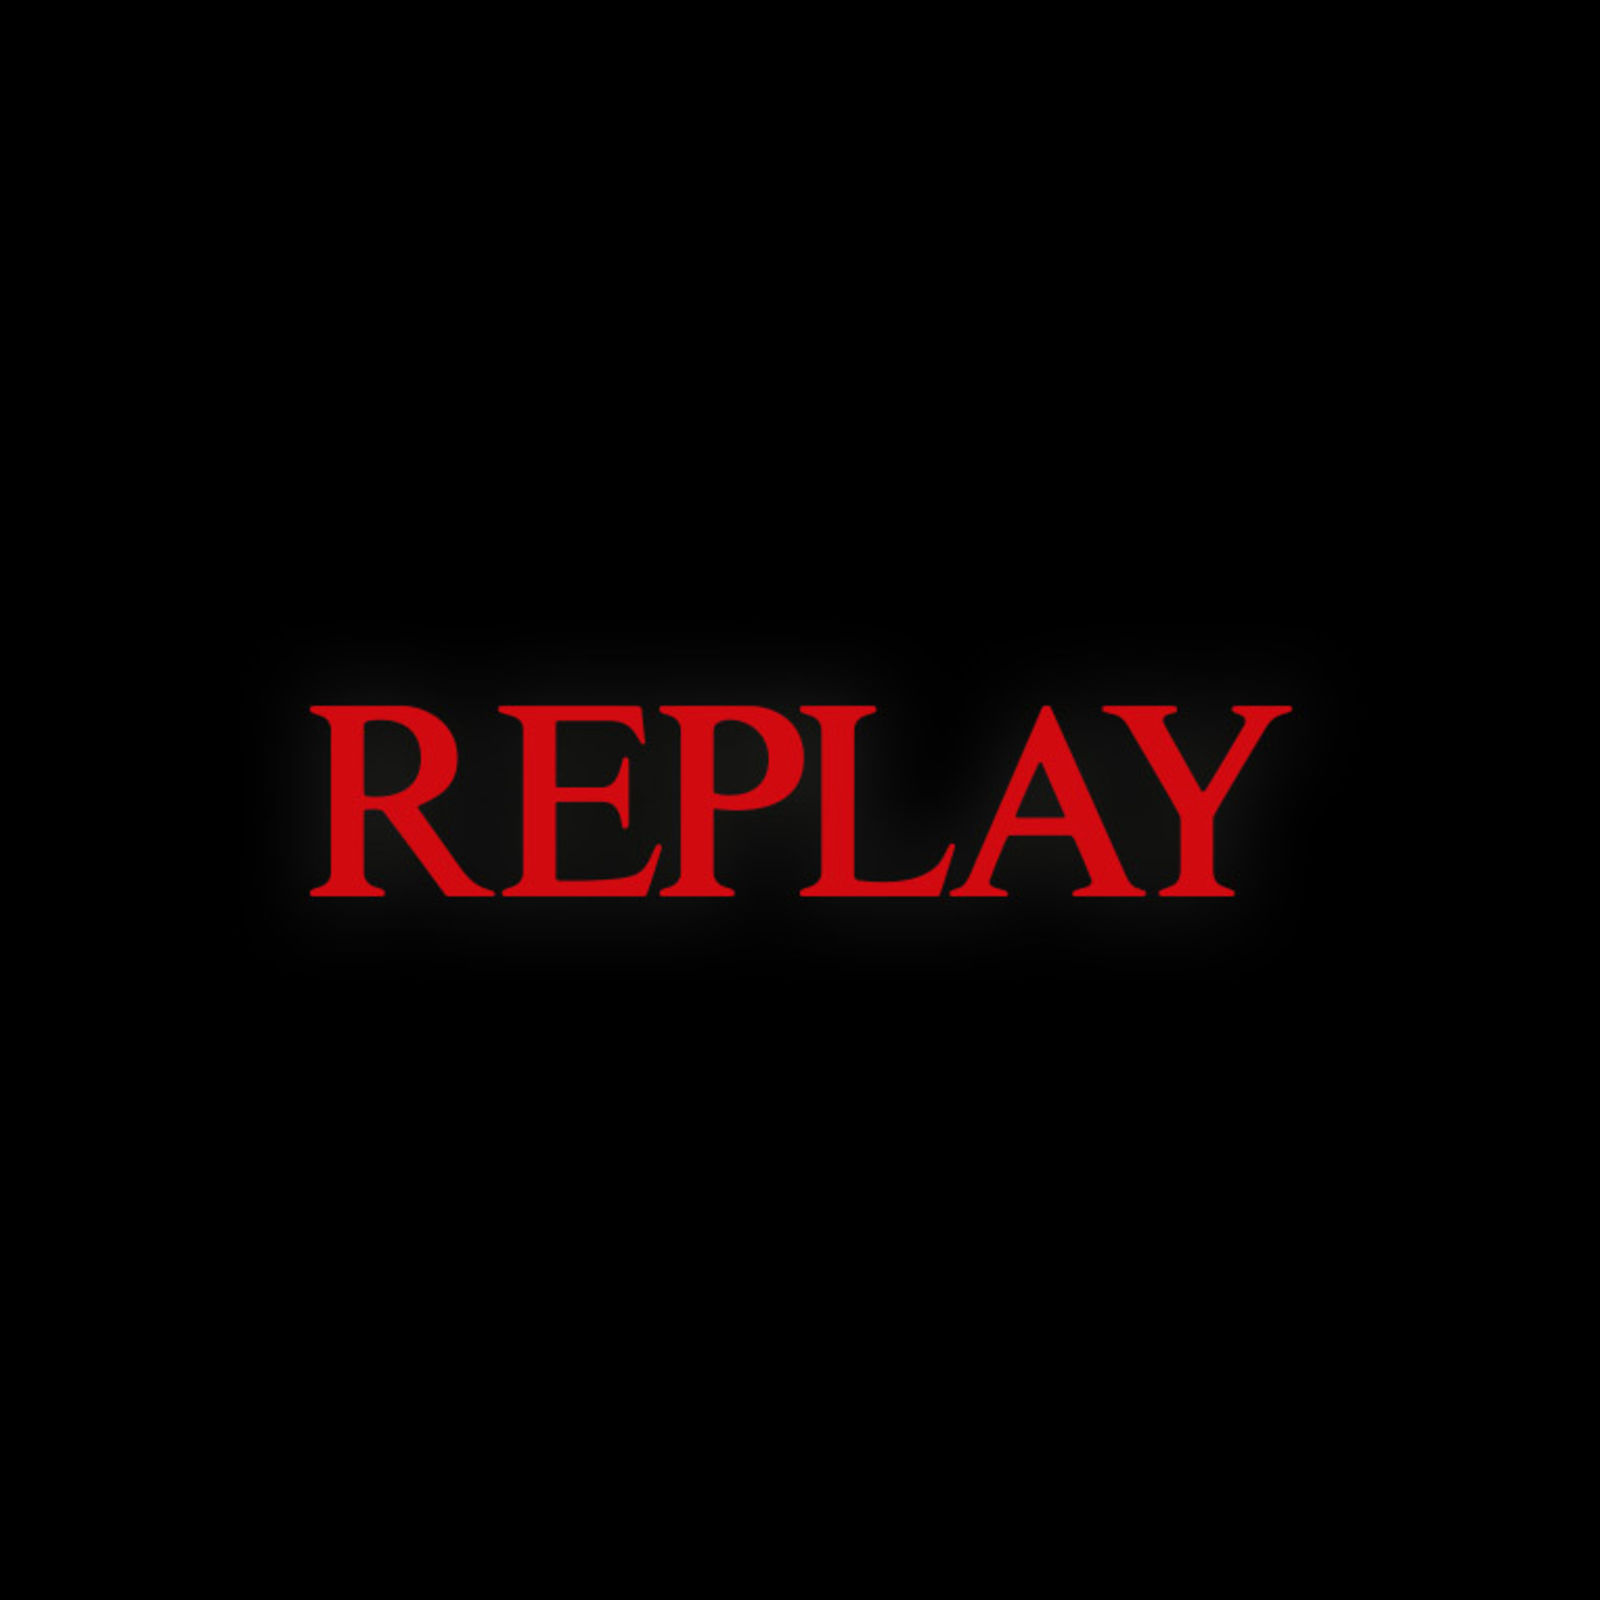 REPLAY (Image 1)